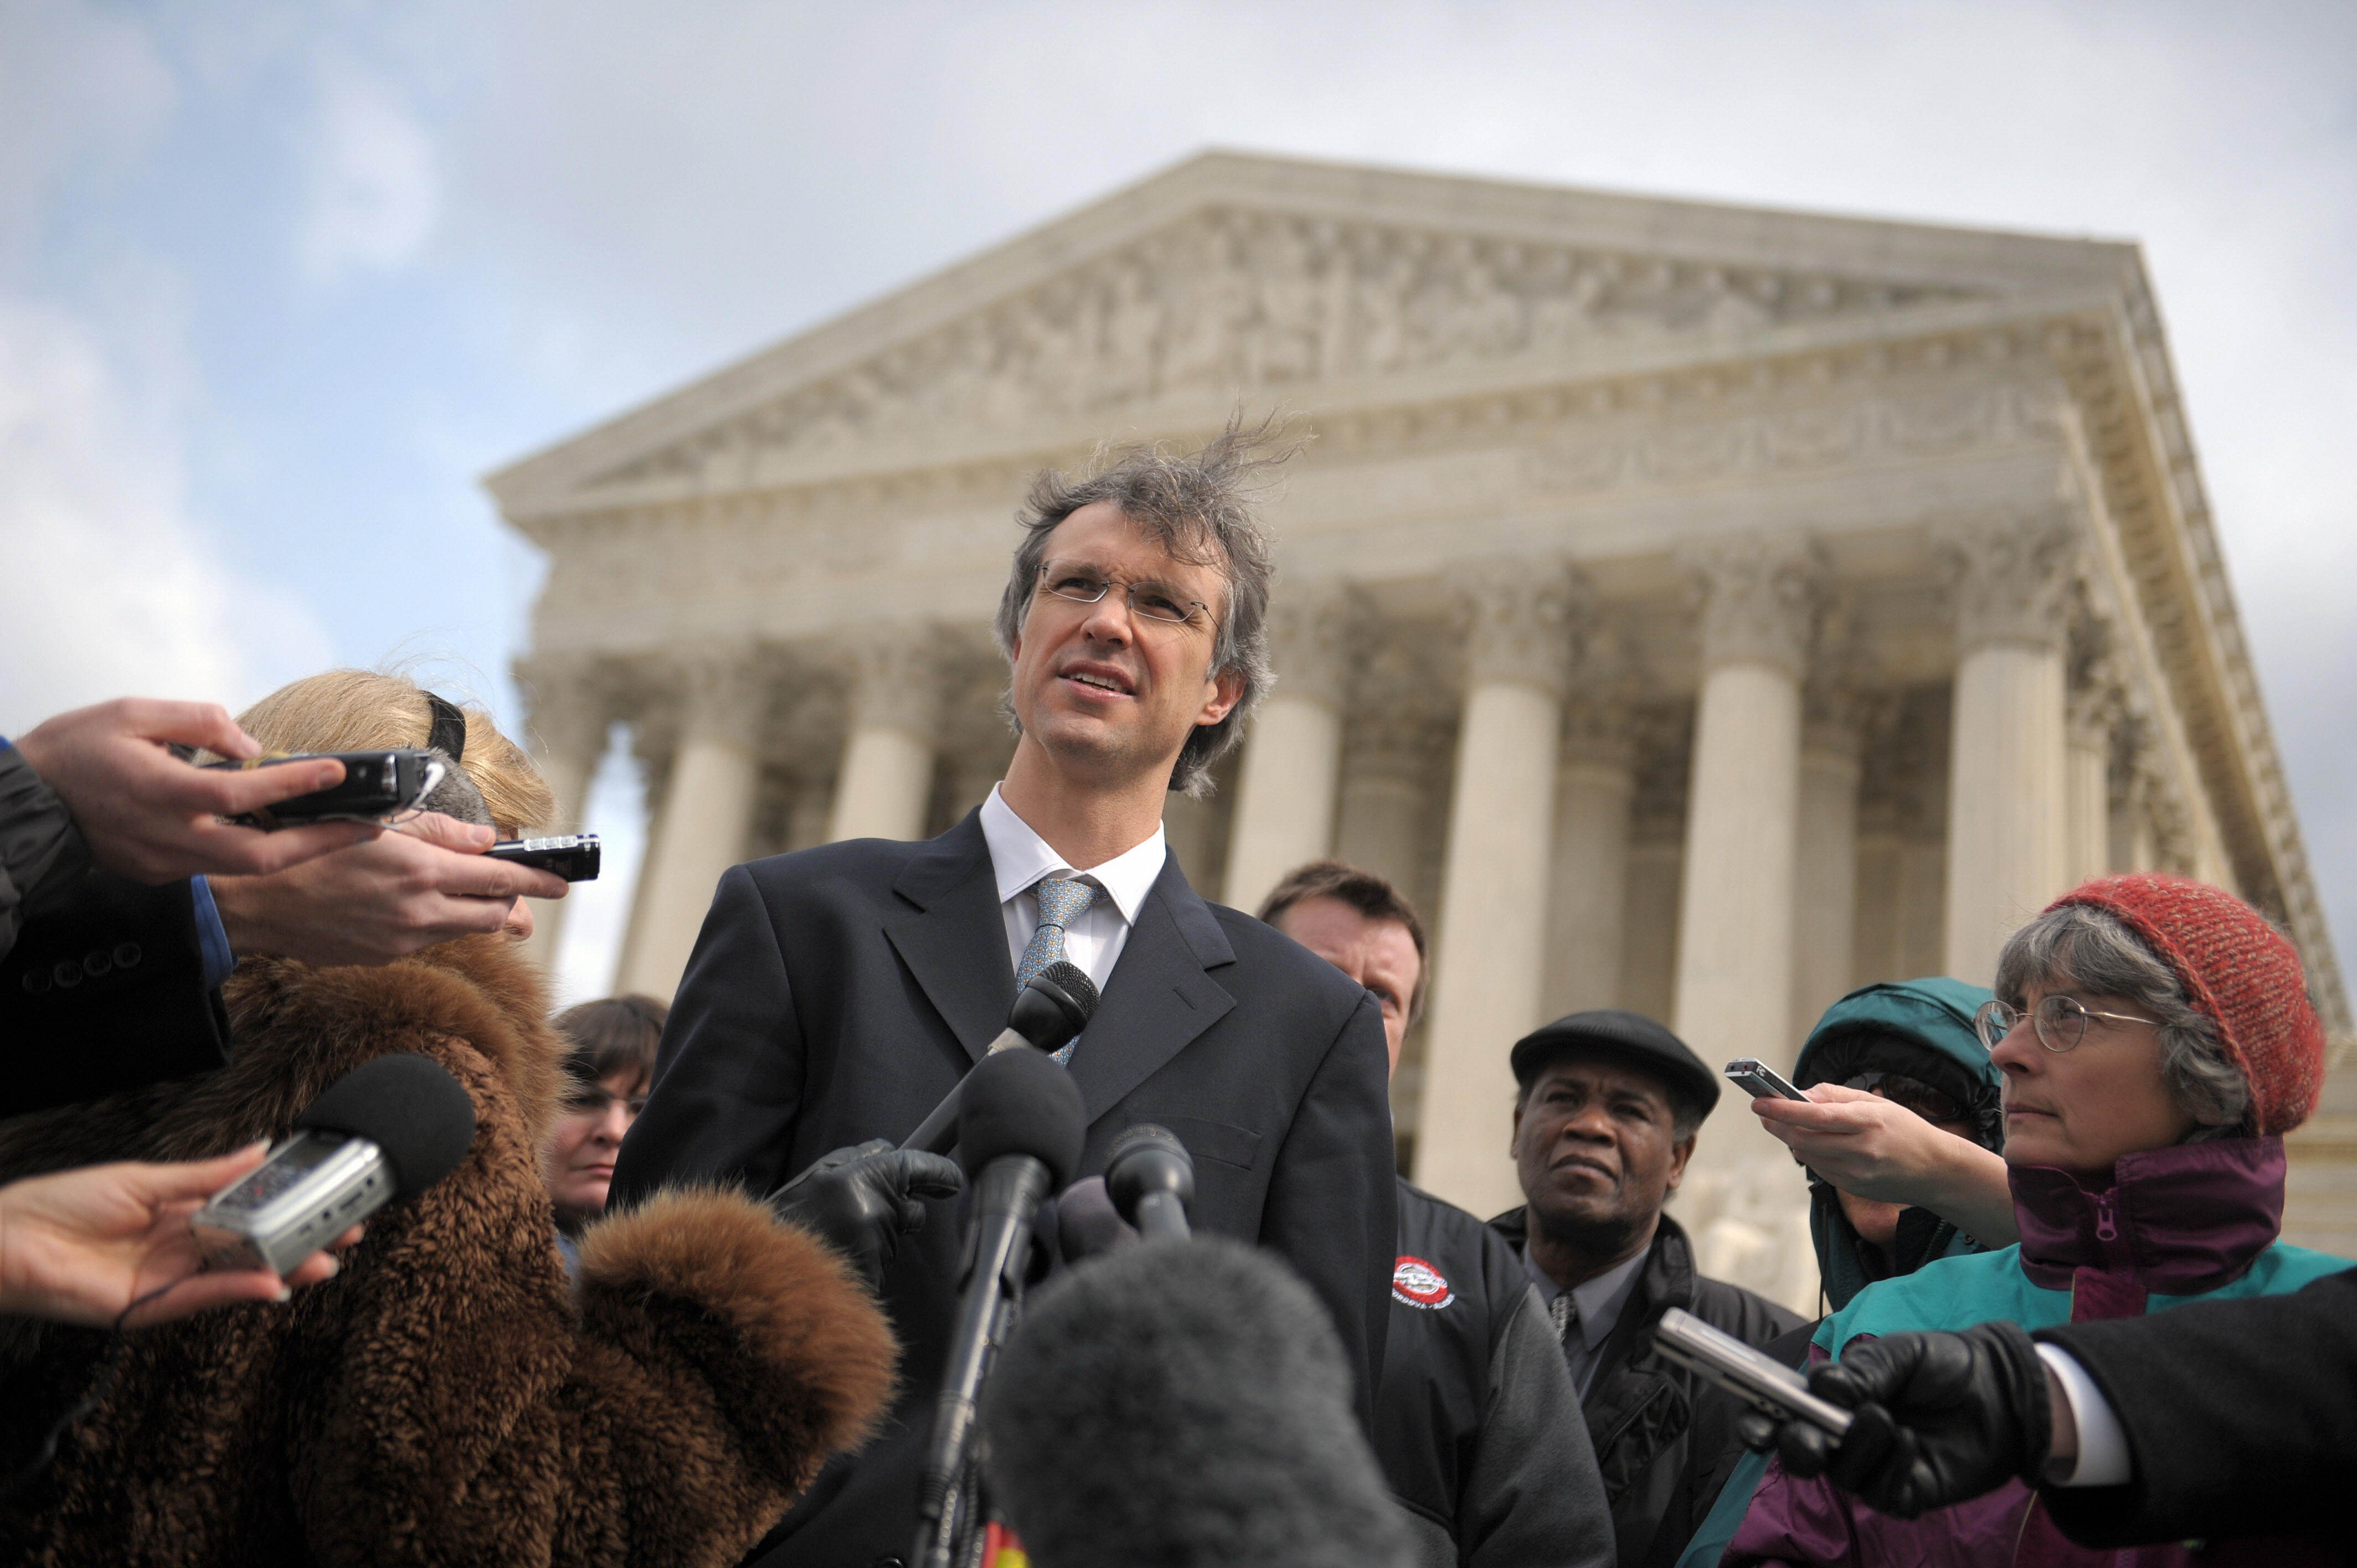 Stanford University law professor Jeffrey Fisher, representing the Alaskan plaintiffs, makes remarks to the press after giving oral arguments before the US Supreme Court on February 27, 2008 in Washington, DC.